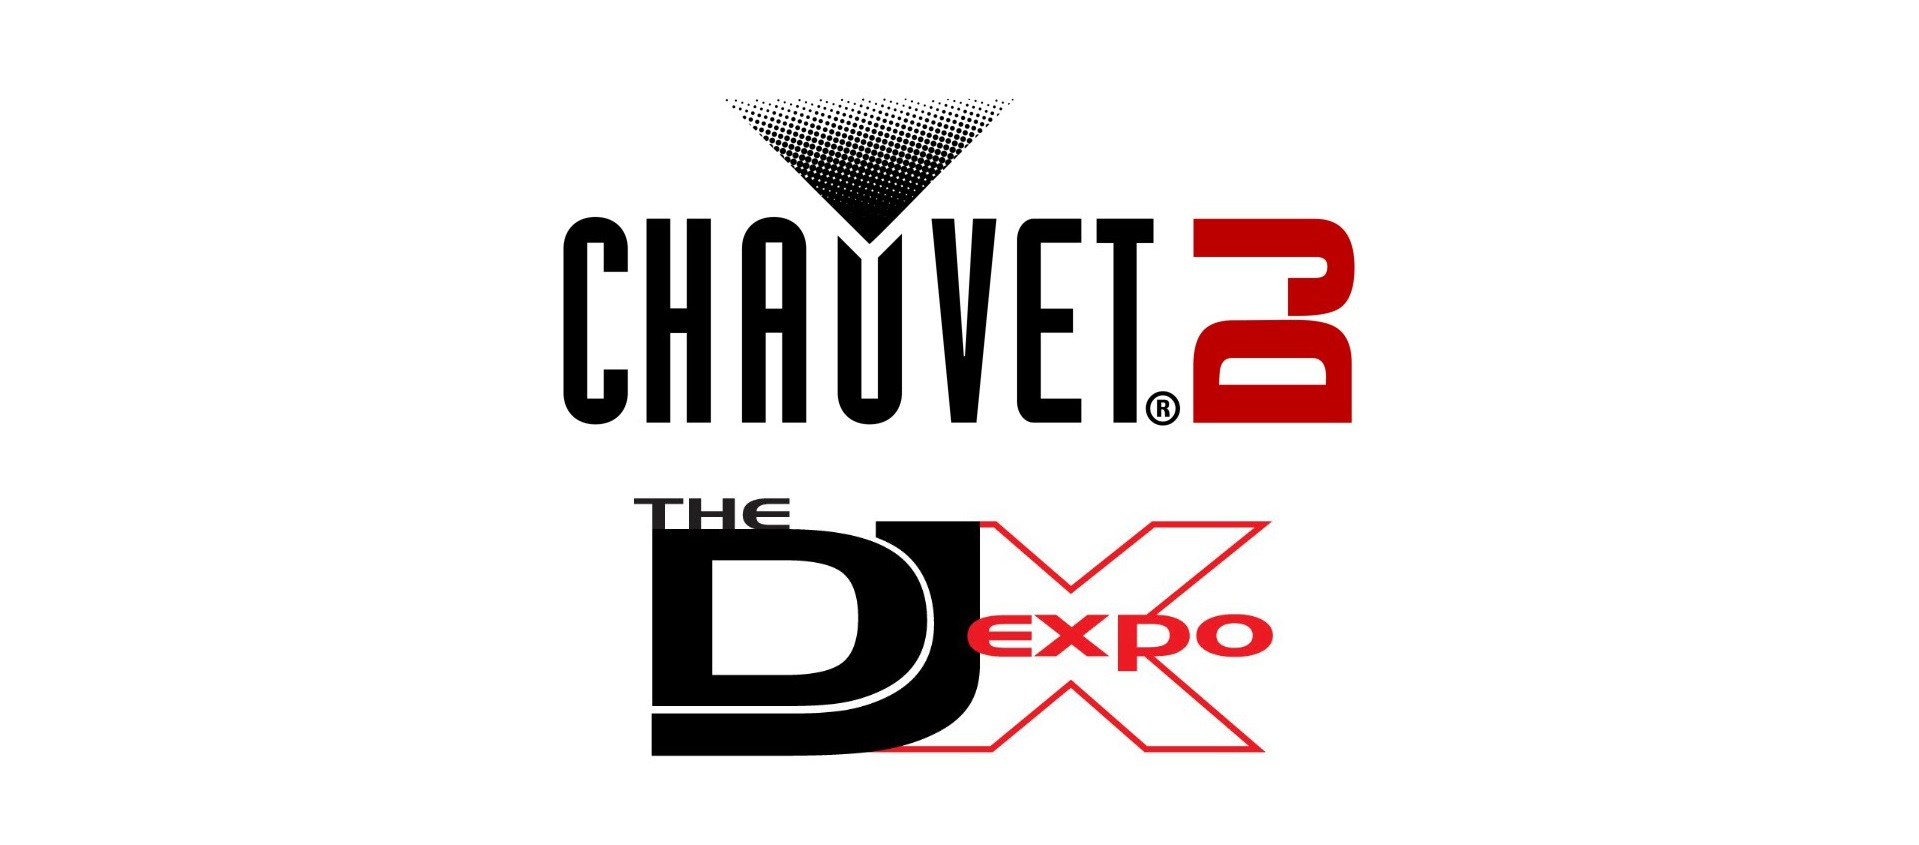 Chauvet Dj To Unveil Collection Of Firsts At Dj Expo